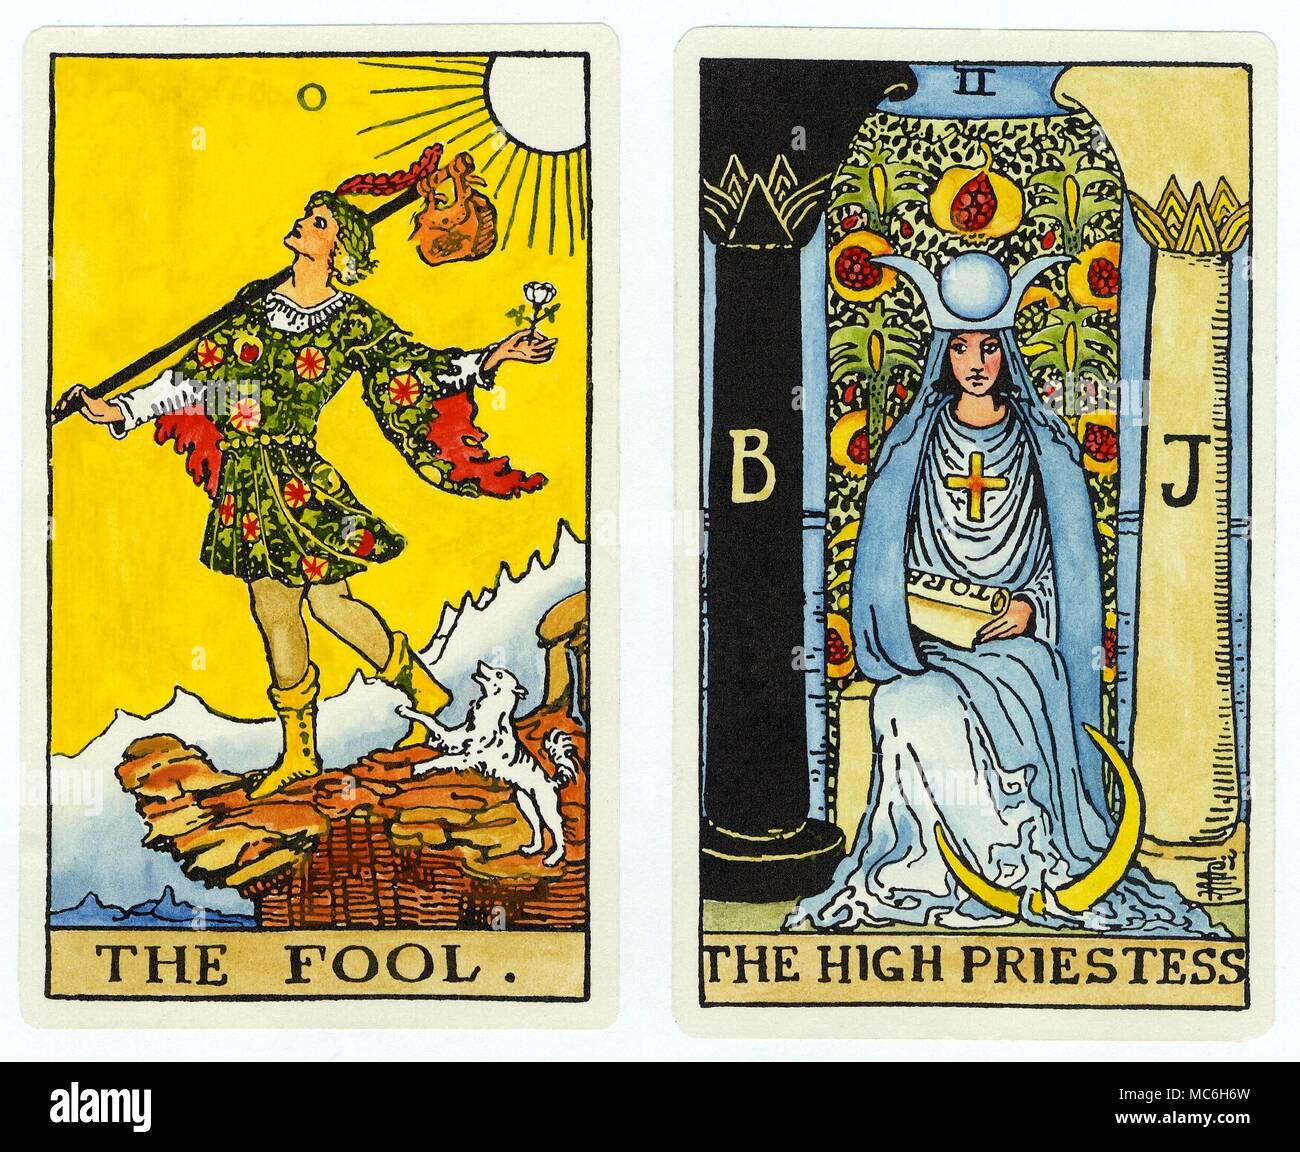 High Priestess Stock Photos & High Priestess Stock Images